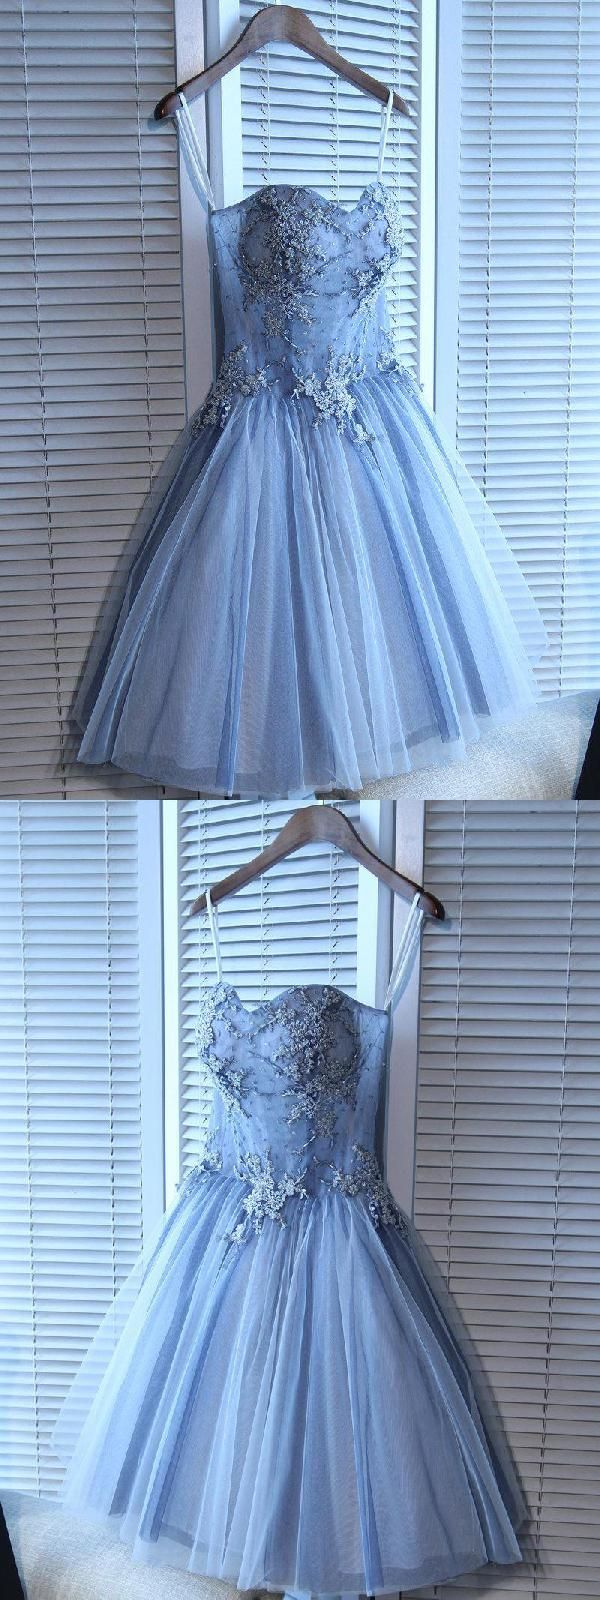 Customized glorious short prom dresses sweetheart homecoming dress